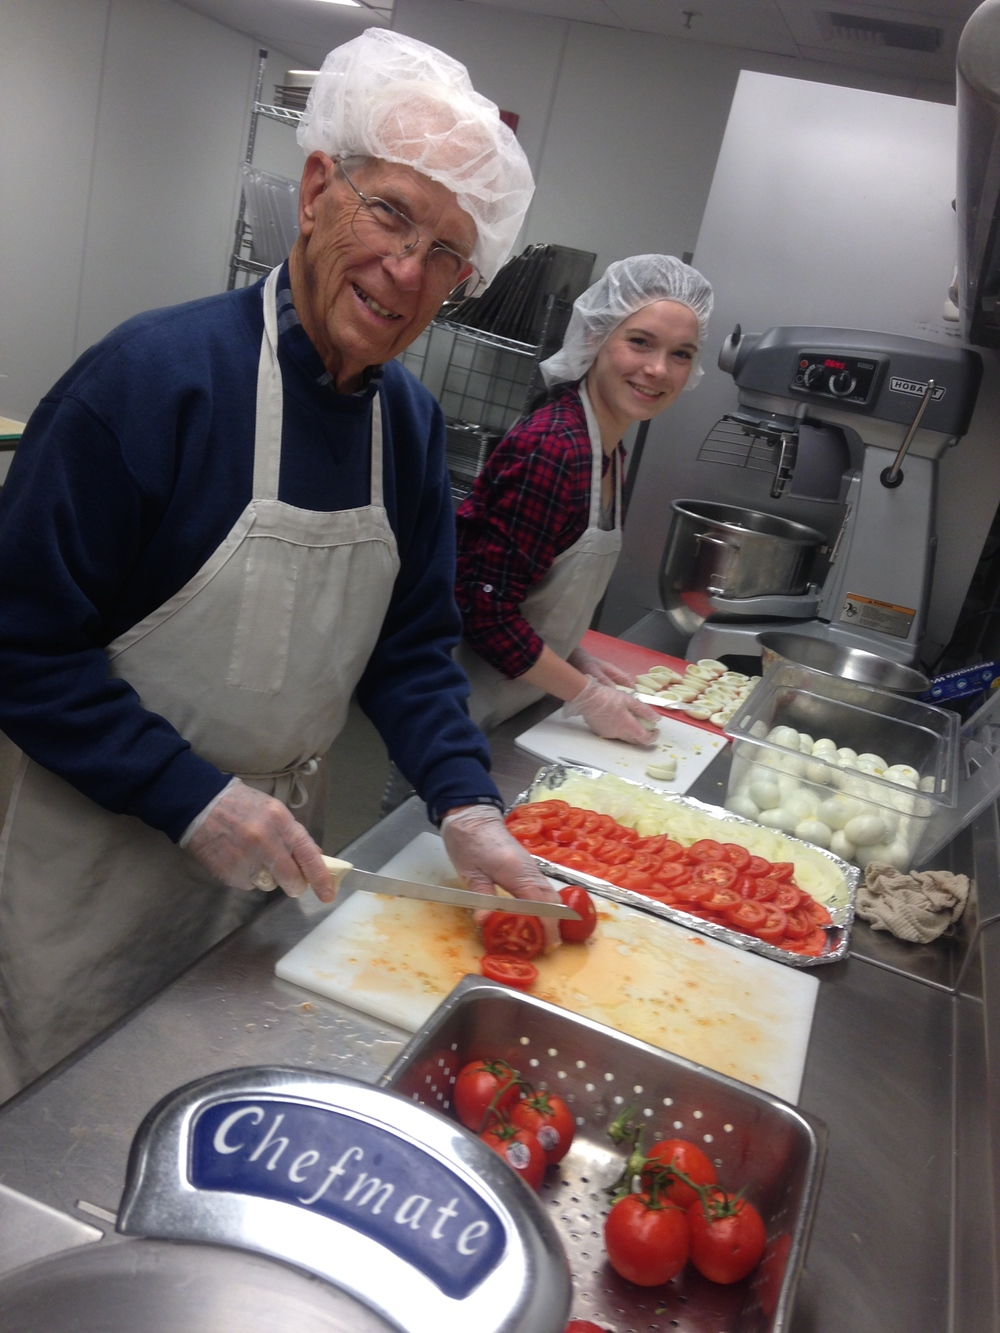 Faith in Action team members dish up smiles and great food at Tacoma Rescue Mission's Adams Street facility.